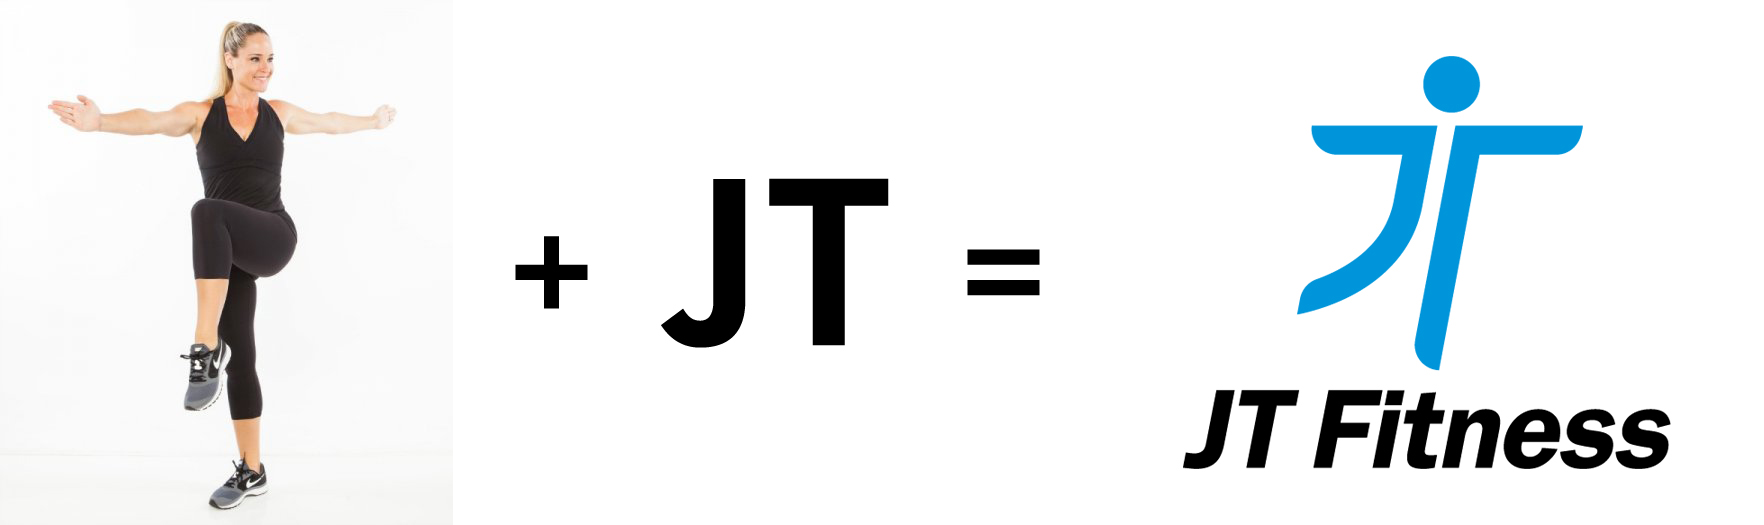 JT Fitness  is a personal fitness trainer/instructor.